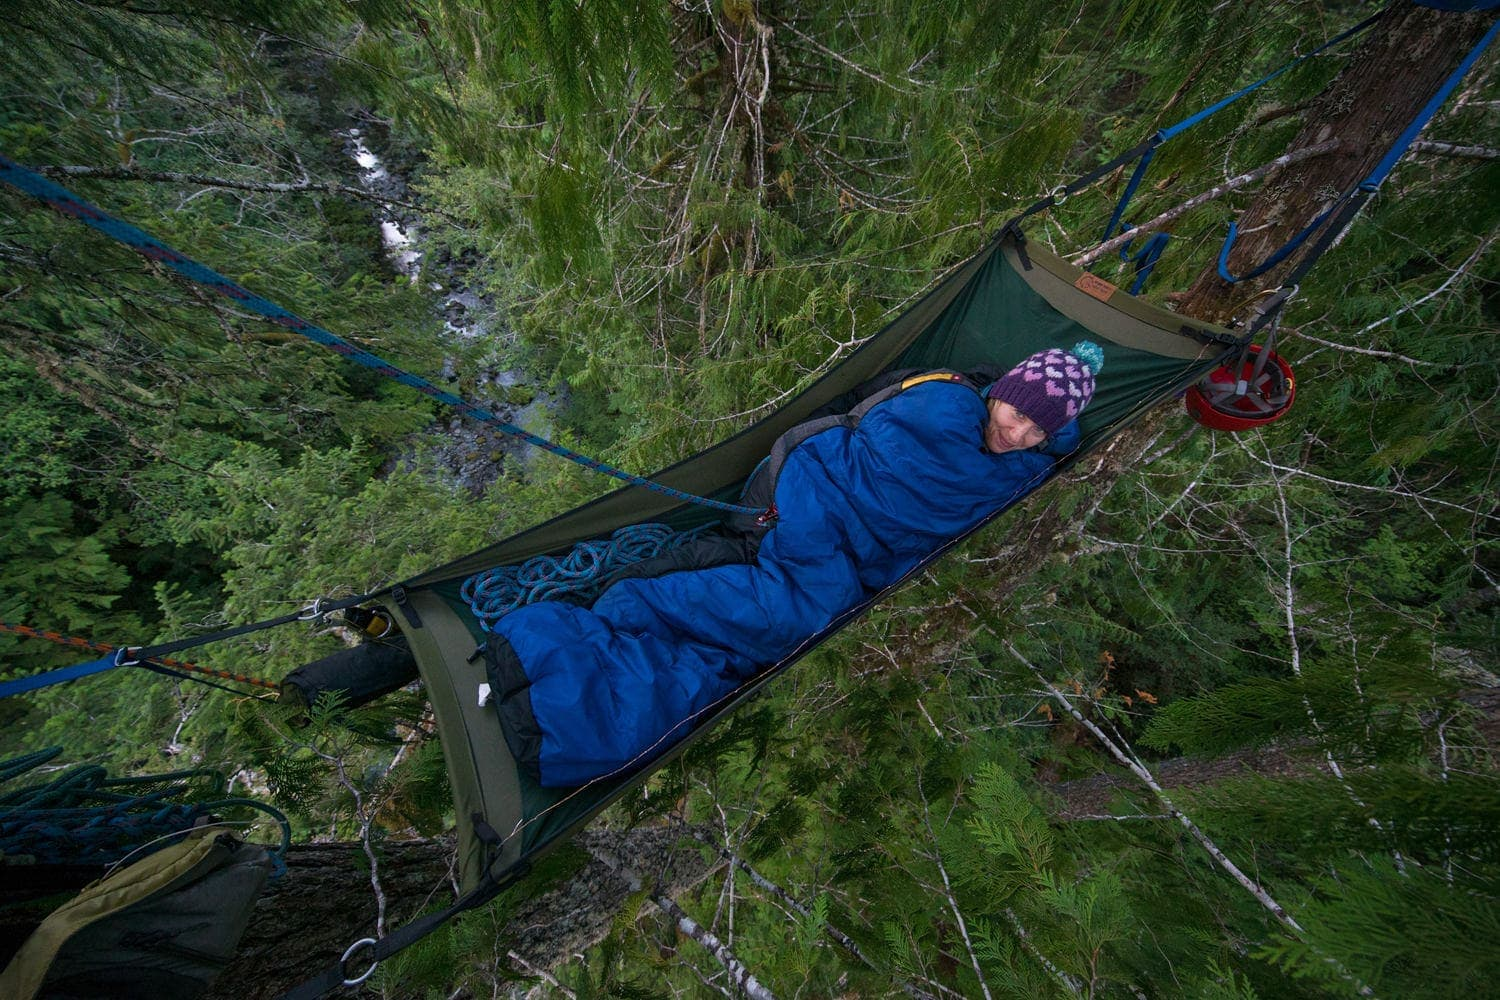 Curled up in a sleeping bag in a Treeboat far above the ground